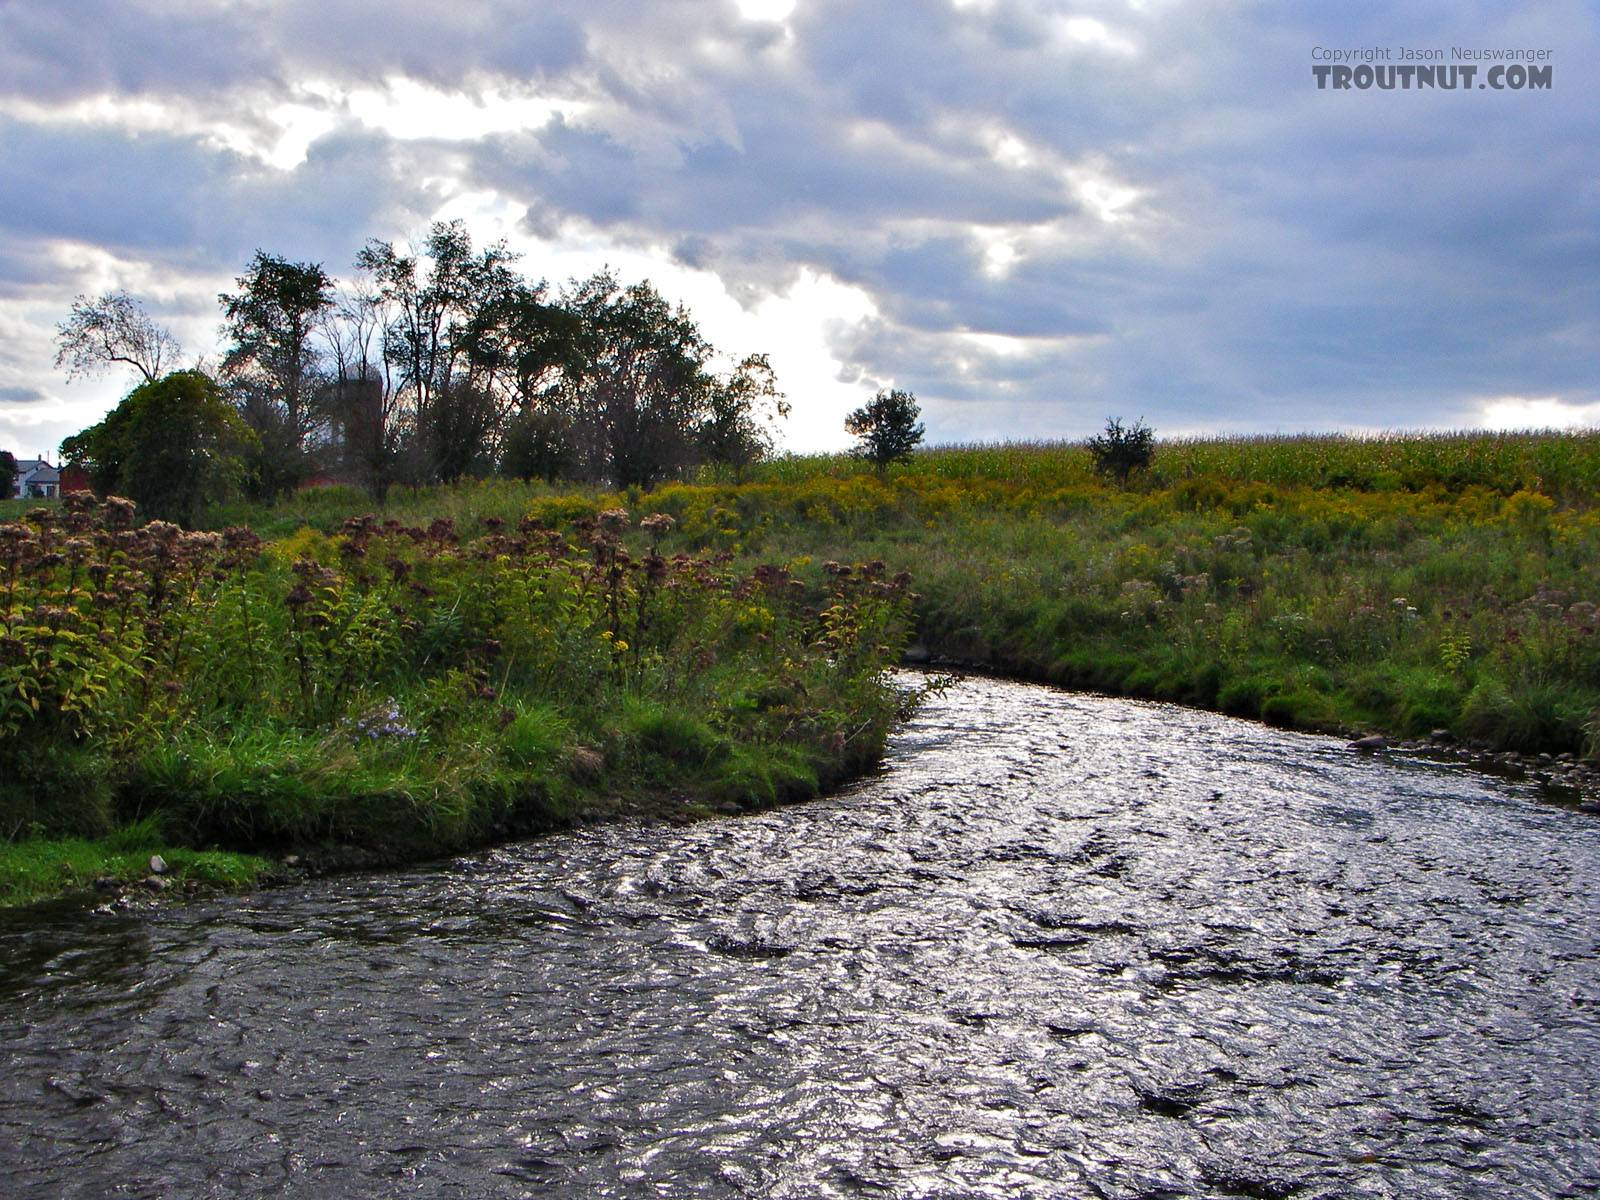 From Fall Creek in New York.